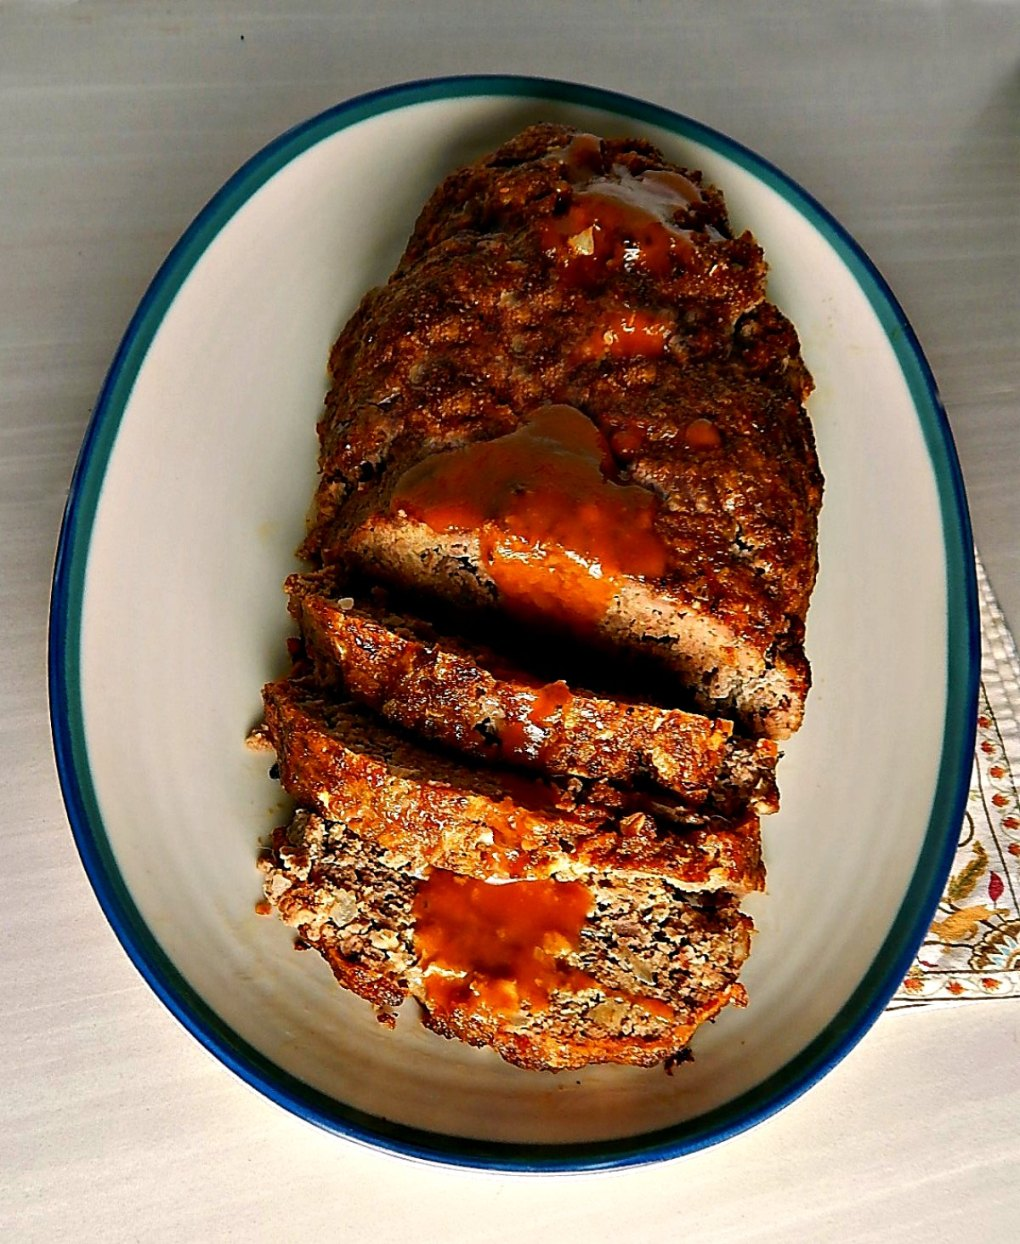 Nathalie Duprees Meatloaf